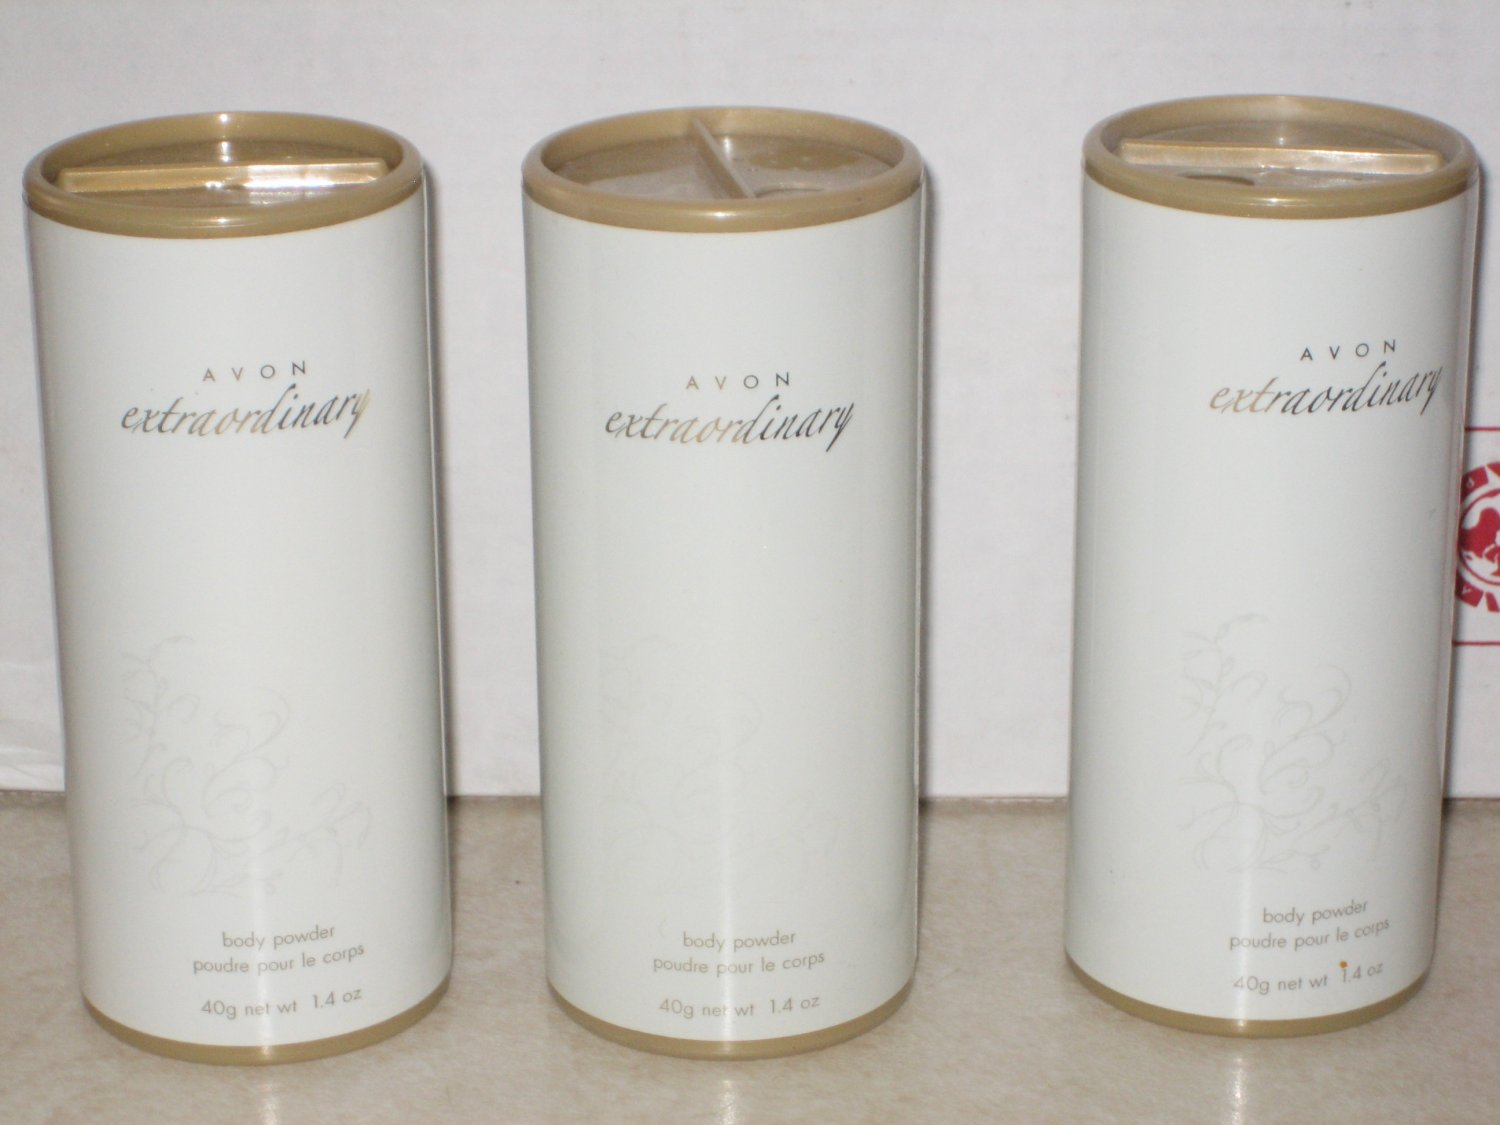 3 AVON EXTRAORDINARY Fragrance Body POWDER Talc 2006